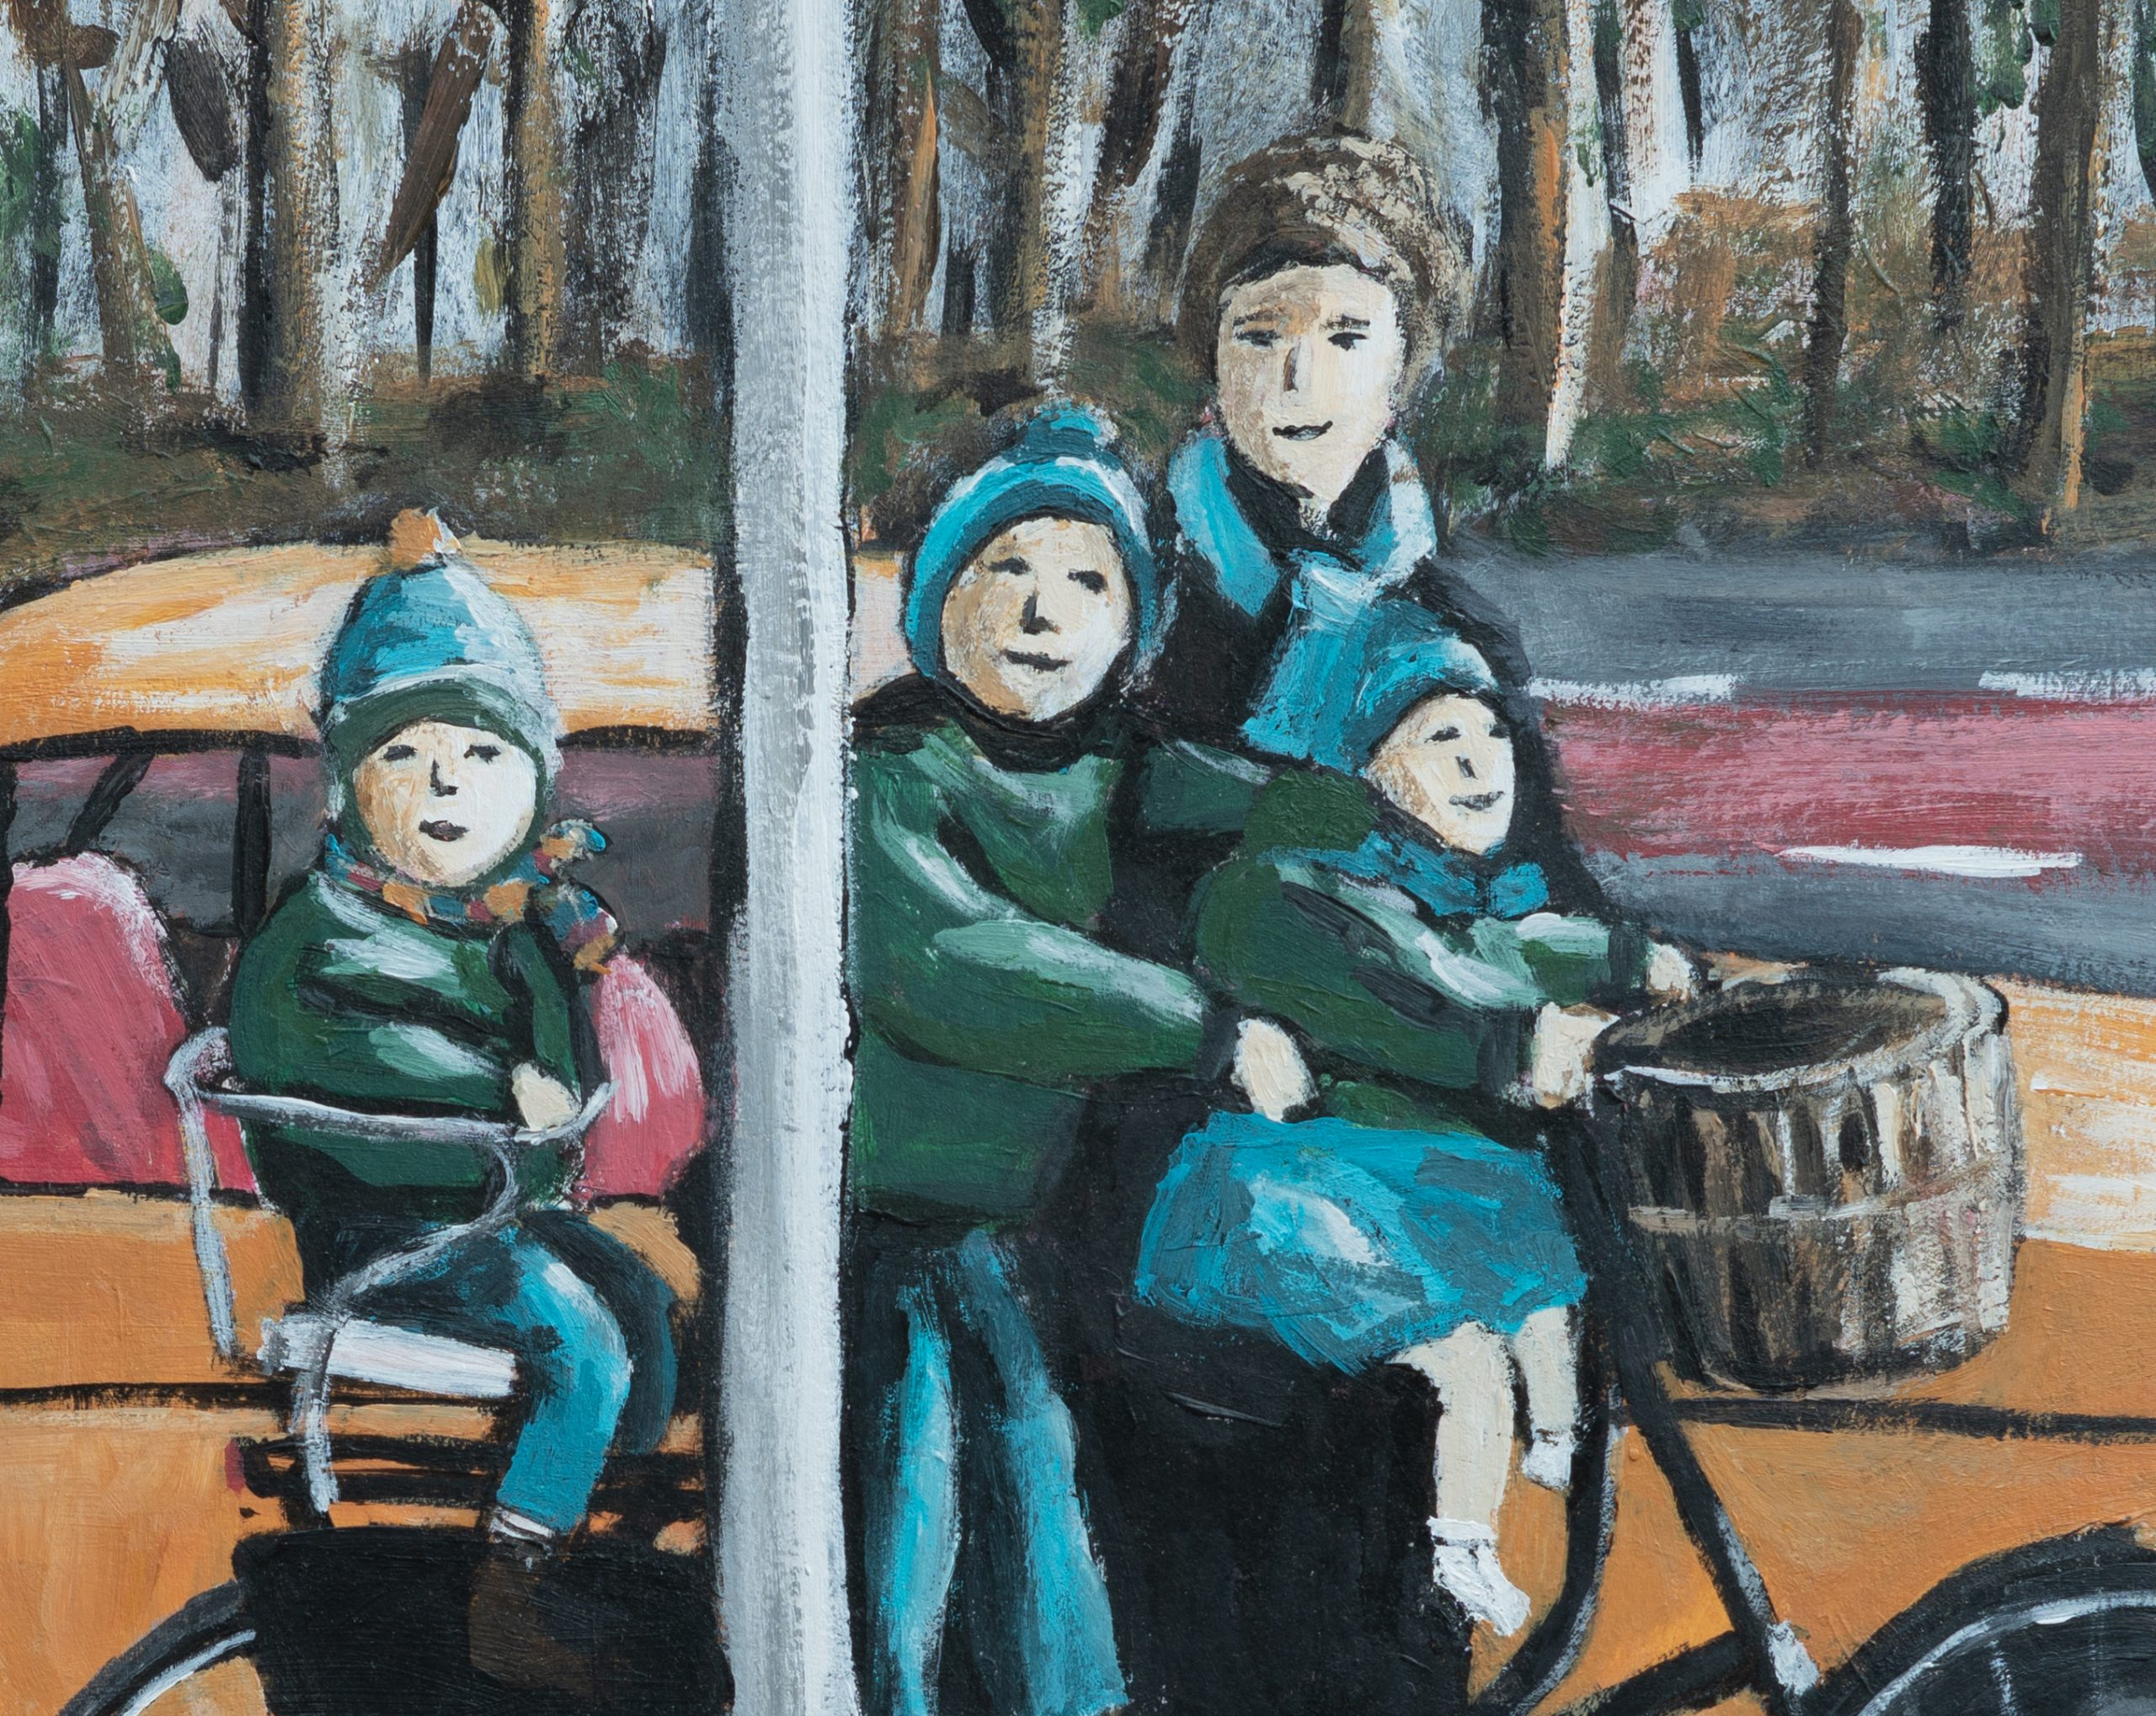 Lookin in Painting on mom and kids on bicycle in winter